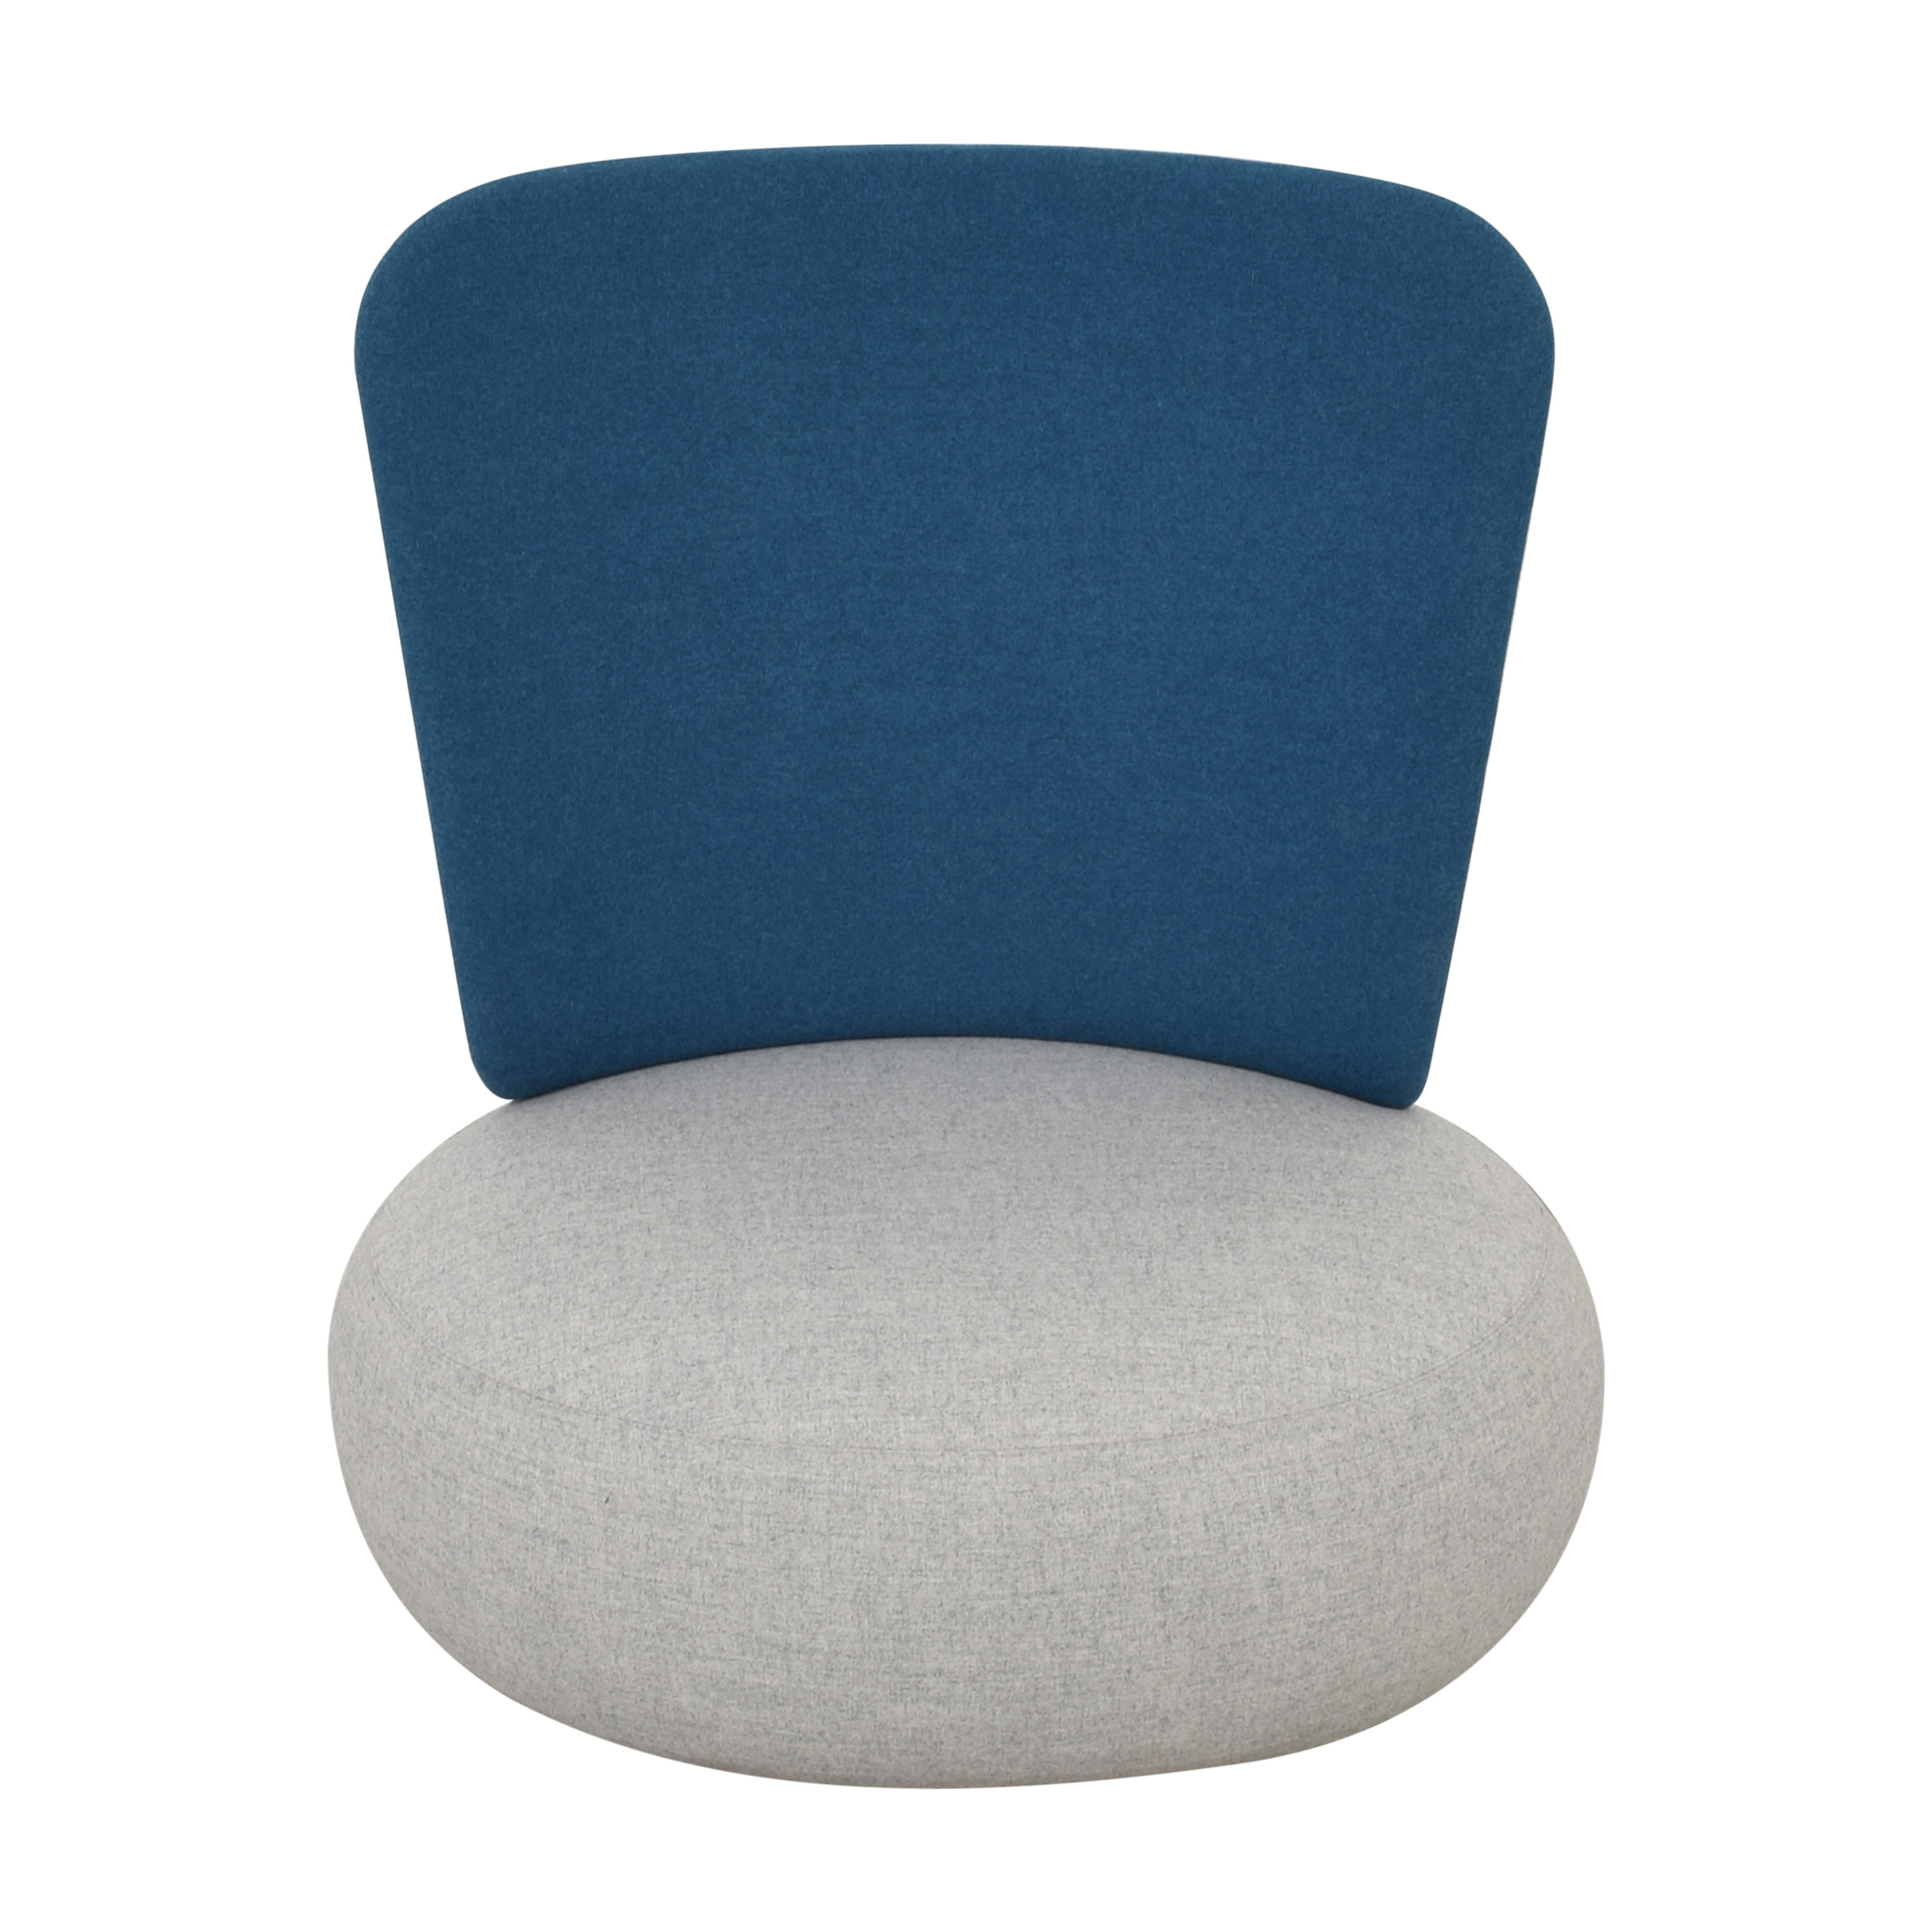 Koleksiyon Koleksiyon Solis Pouf with Backrest gray and blue